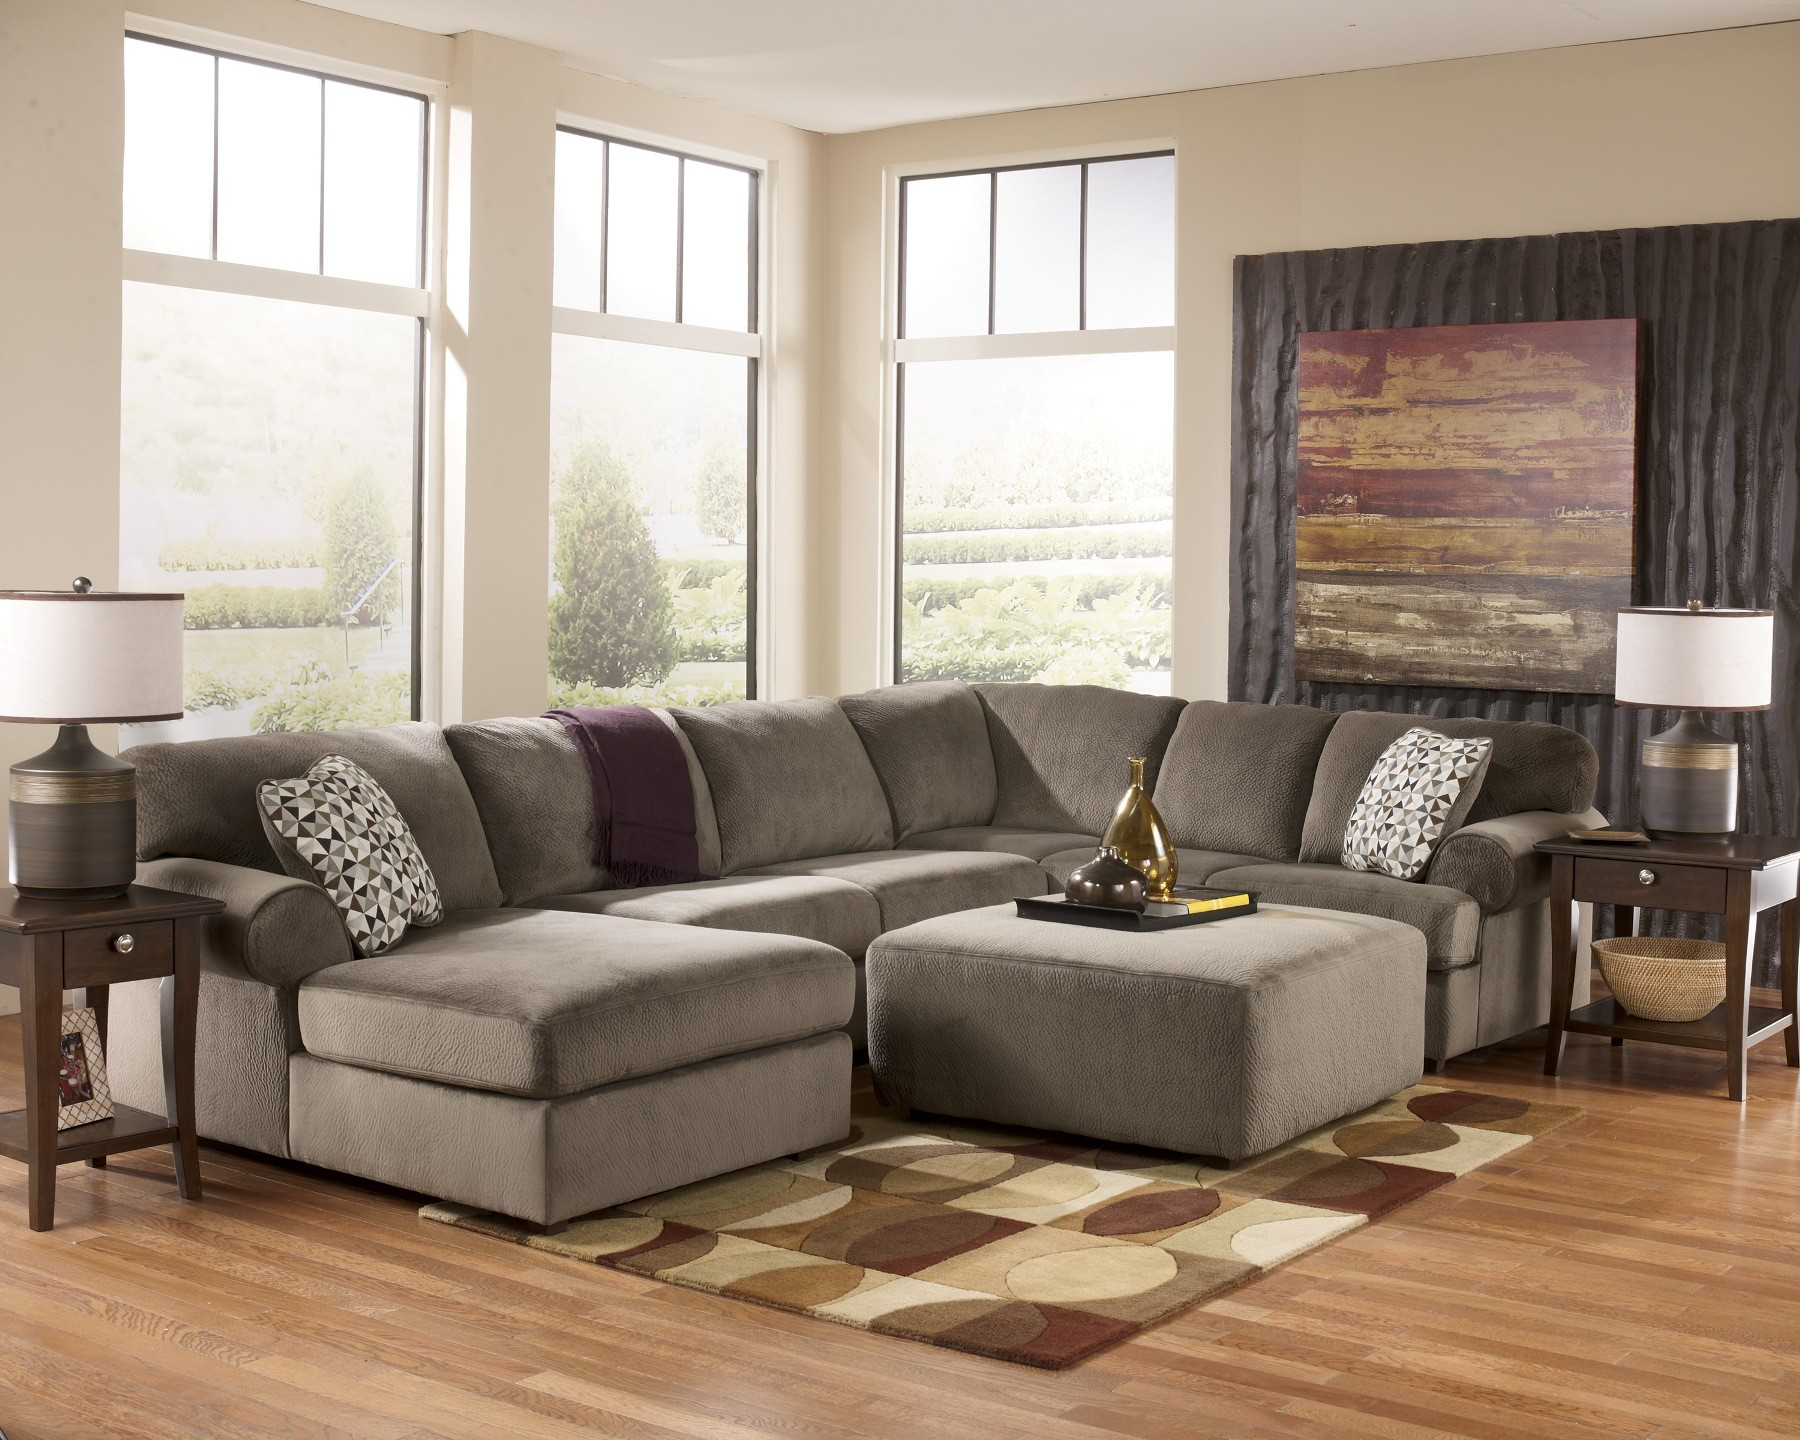 leather sets as included sd living sectionals furniture products ashley room sectional path